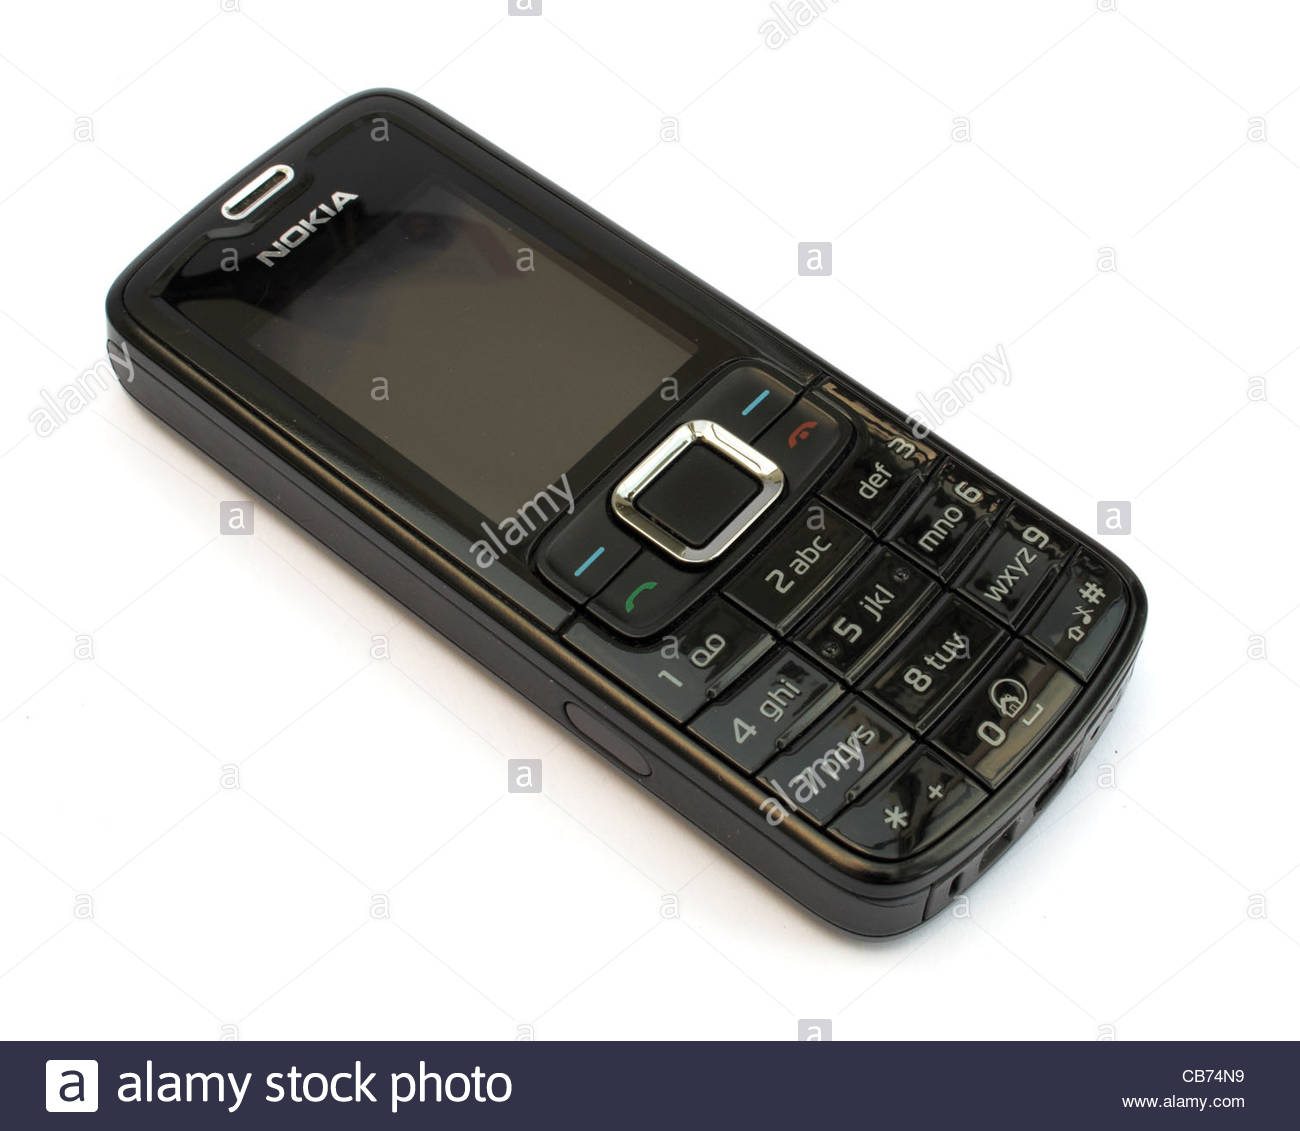 A simple Nokia mobile phone on a white background Stock Photo 1300x1131